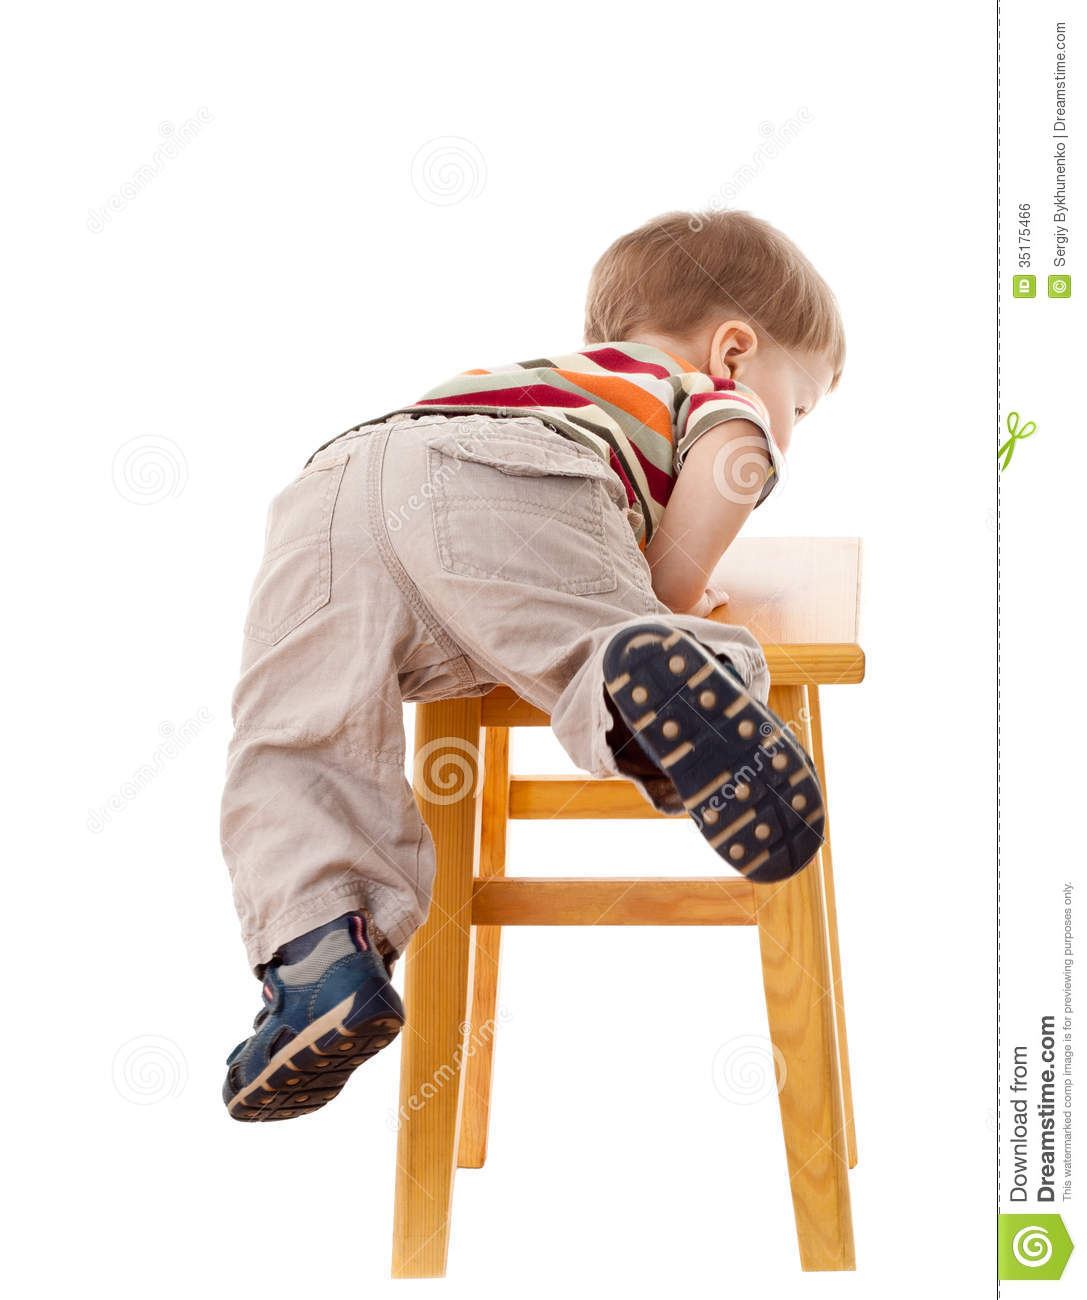 Free Bathroom Floor Plans Little Boy Climbing On Stool Royalty Free Stock Image